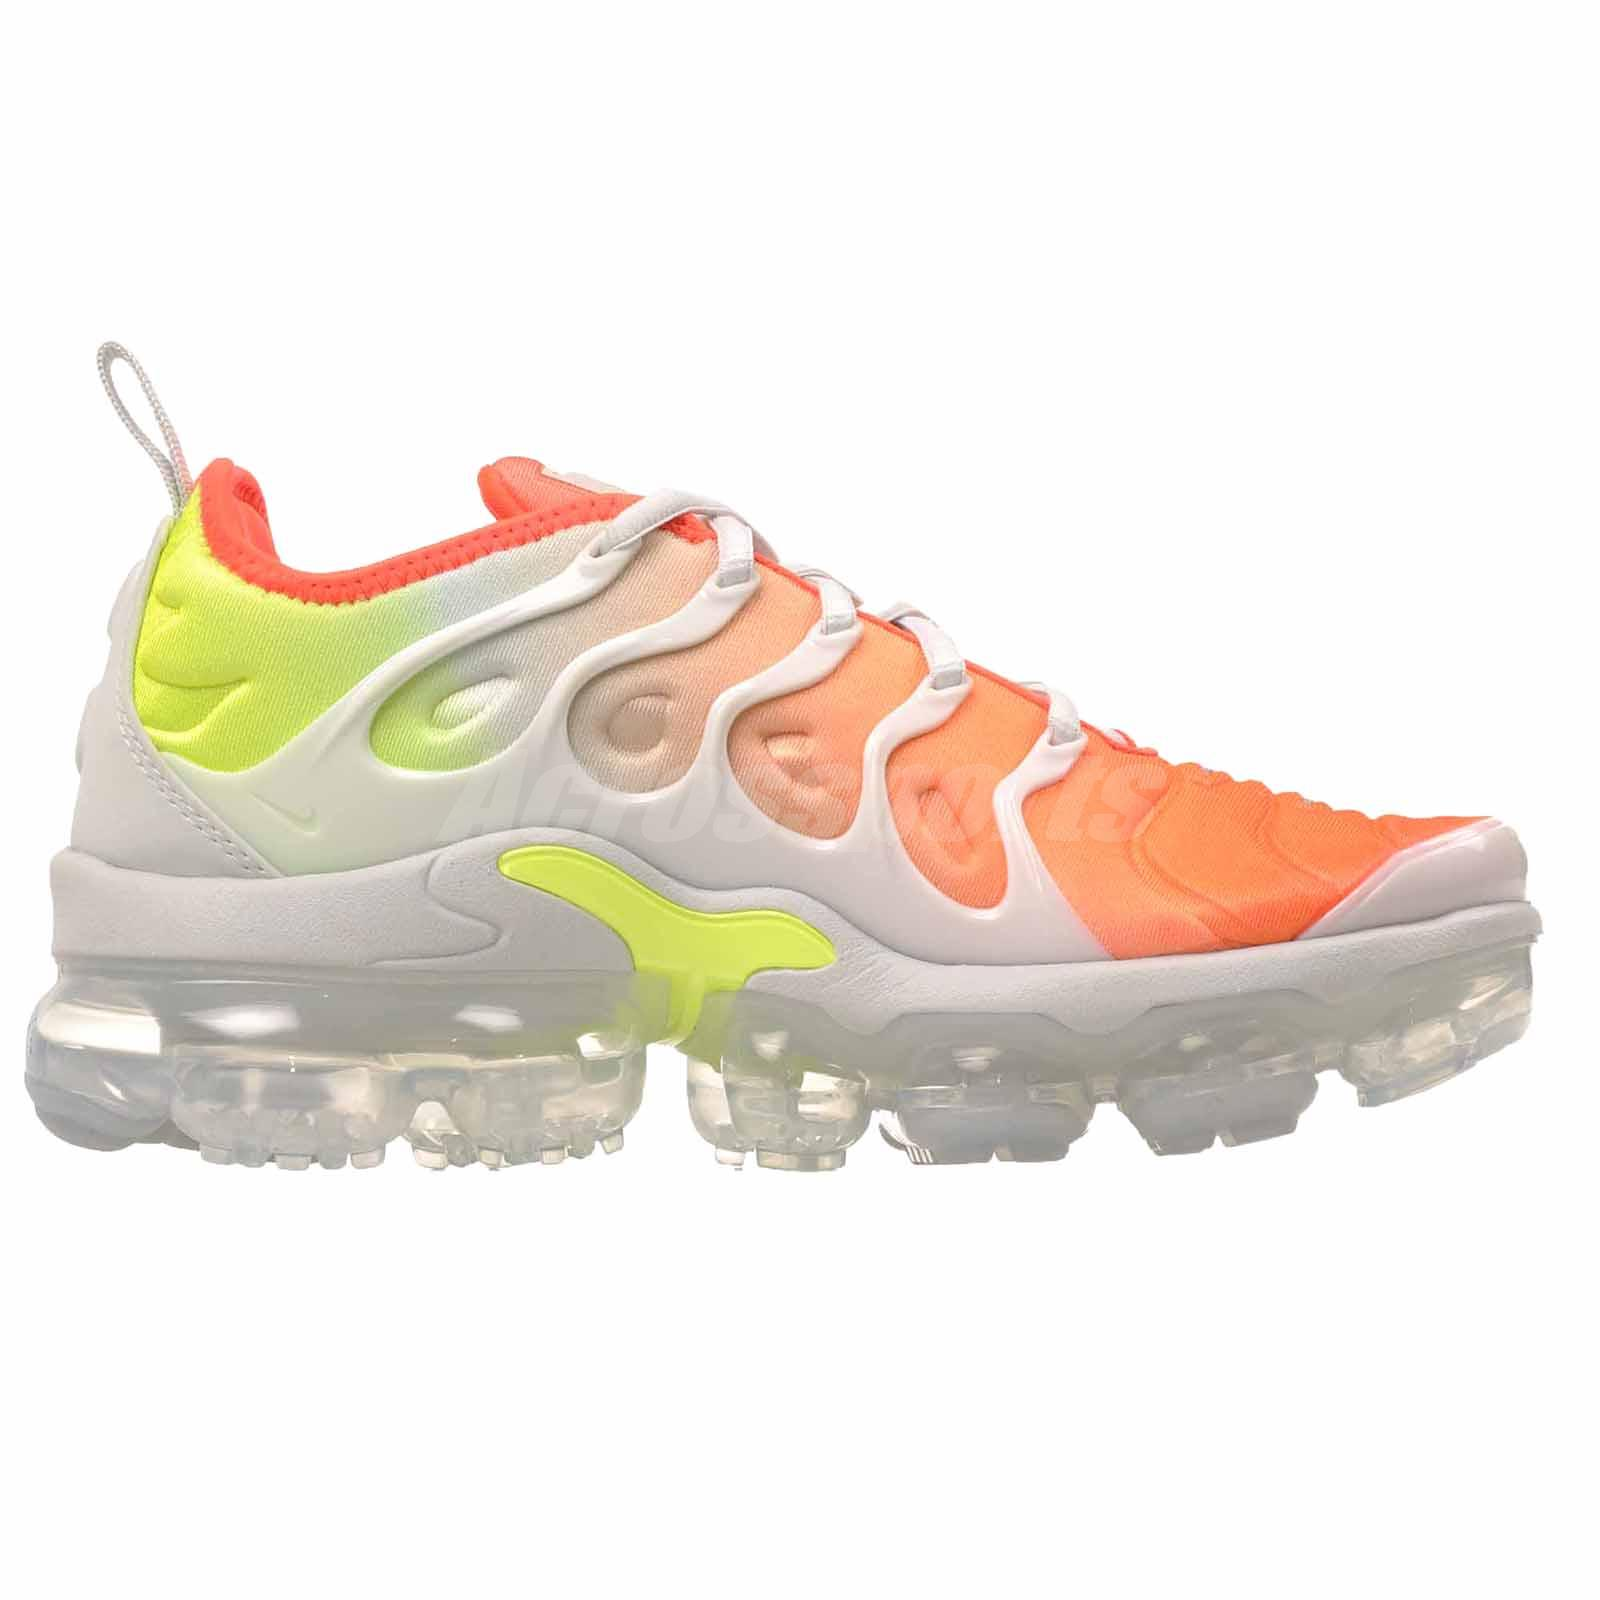 16378f6c38cbe Nike W Air Vapormax Plus Womens Running Shoes Grey Orange Yellow ...